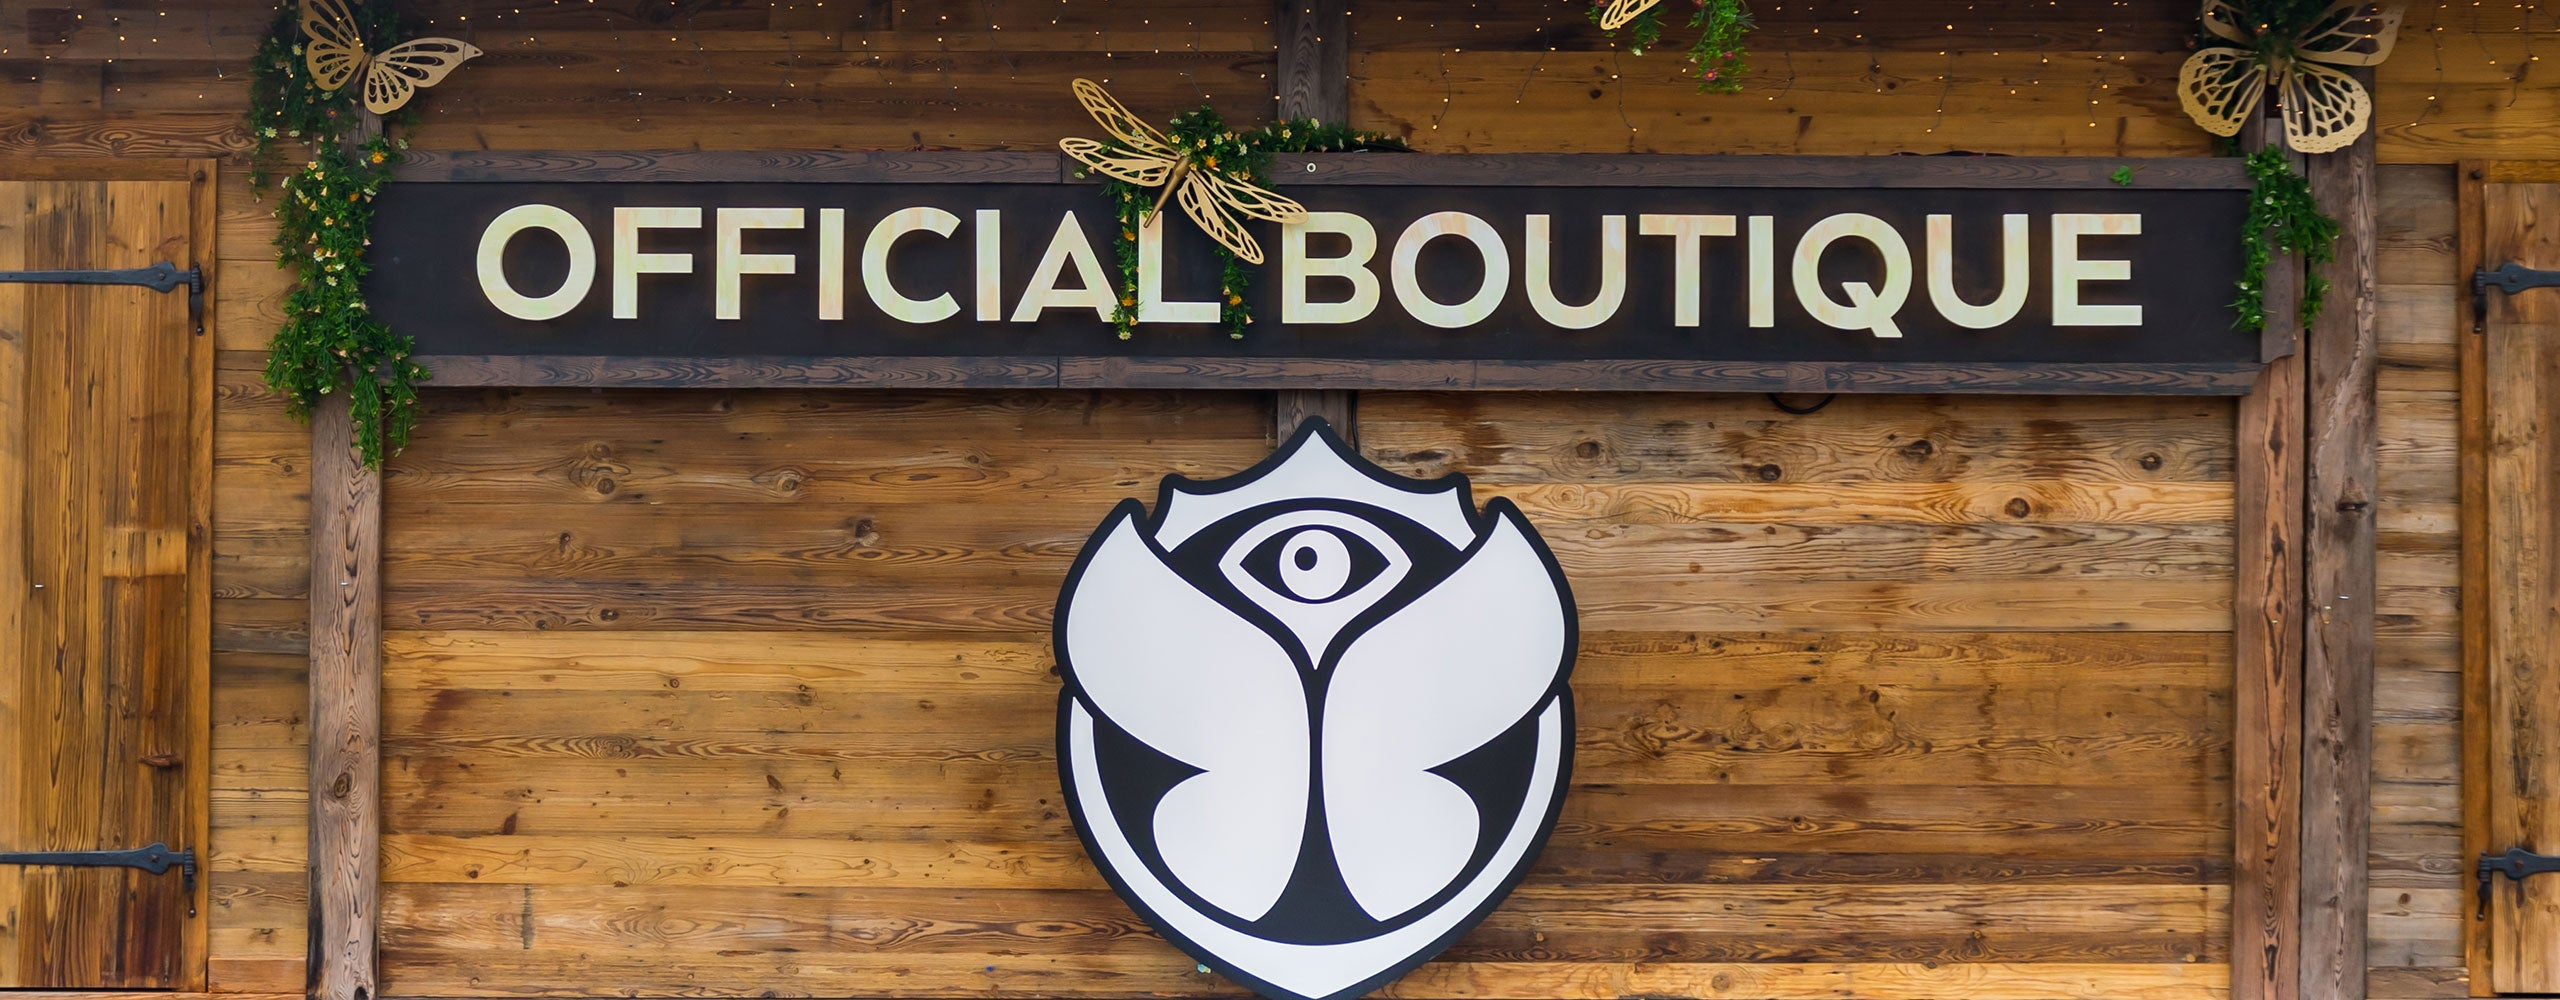 Official Tomorrowland Boutique in Alpe d'Huez